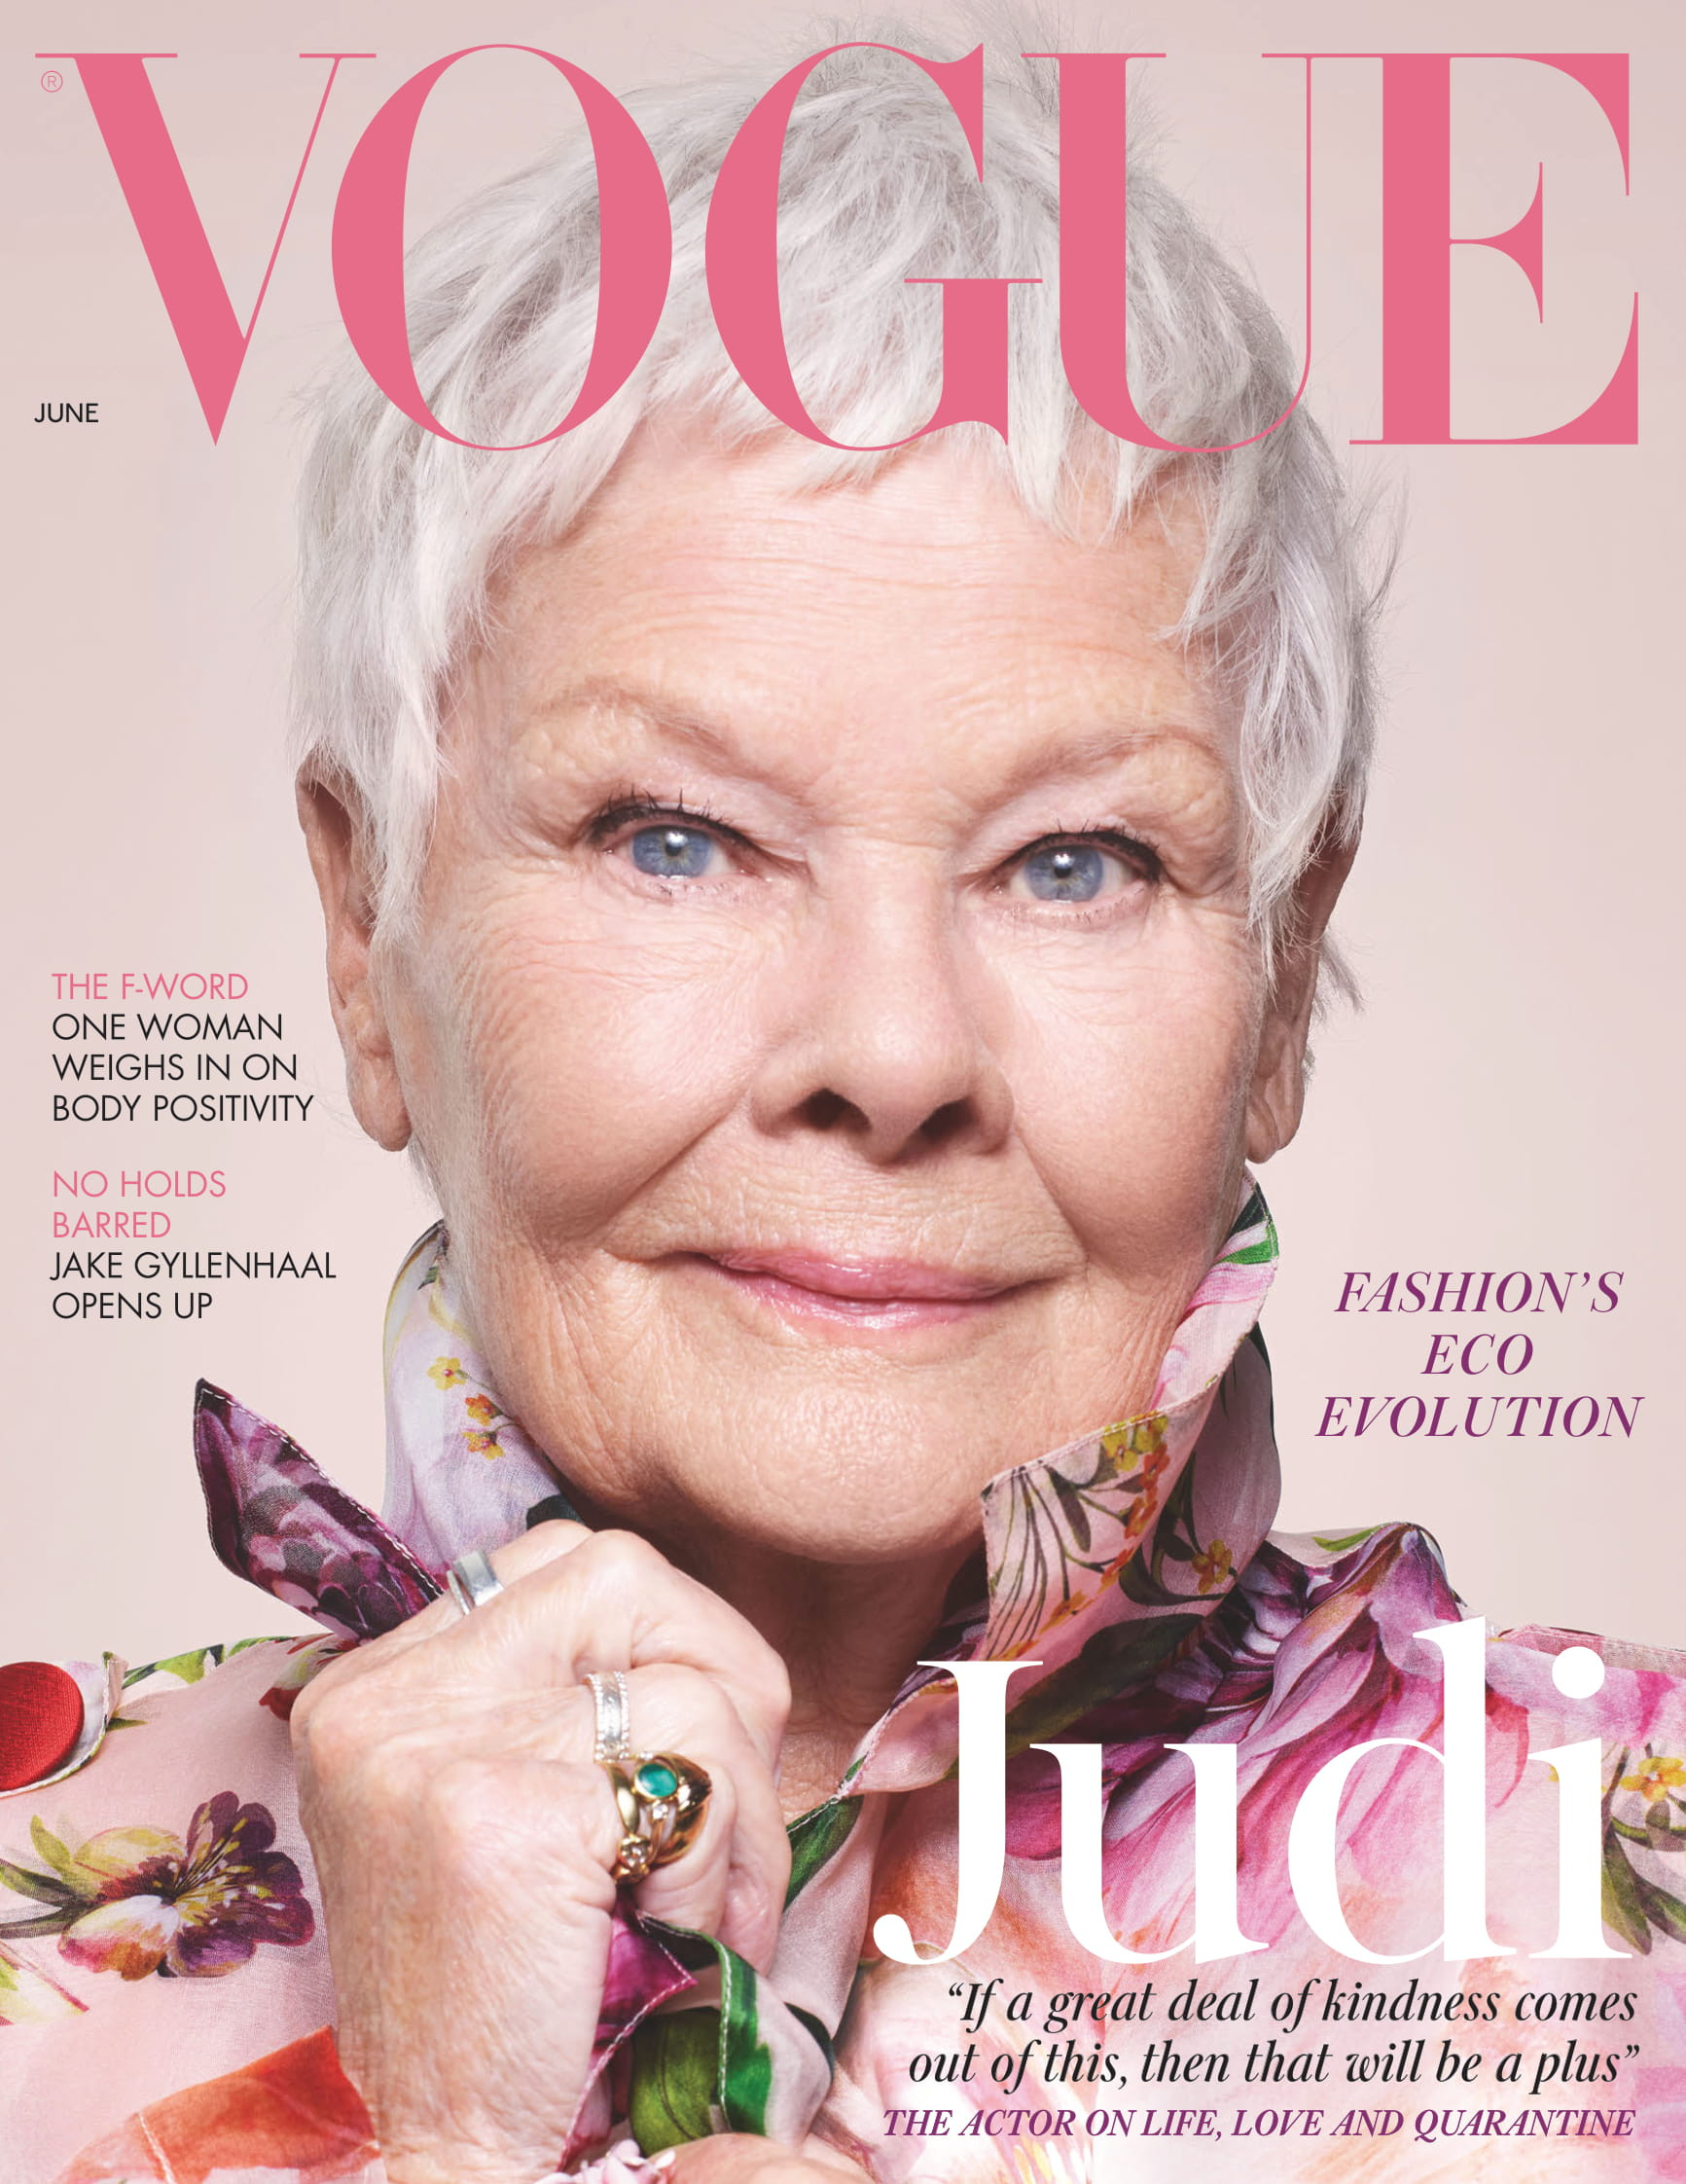 Vogue_Cover_June (1)-1.jpg